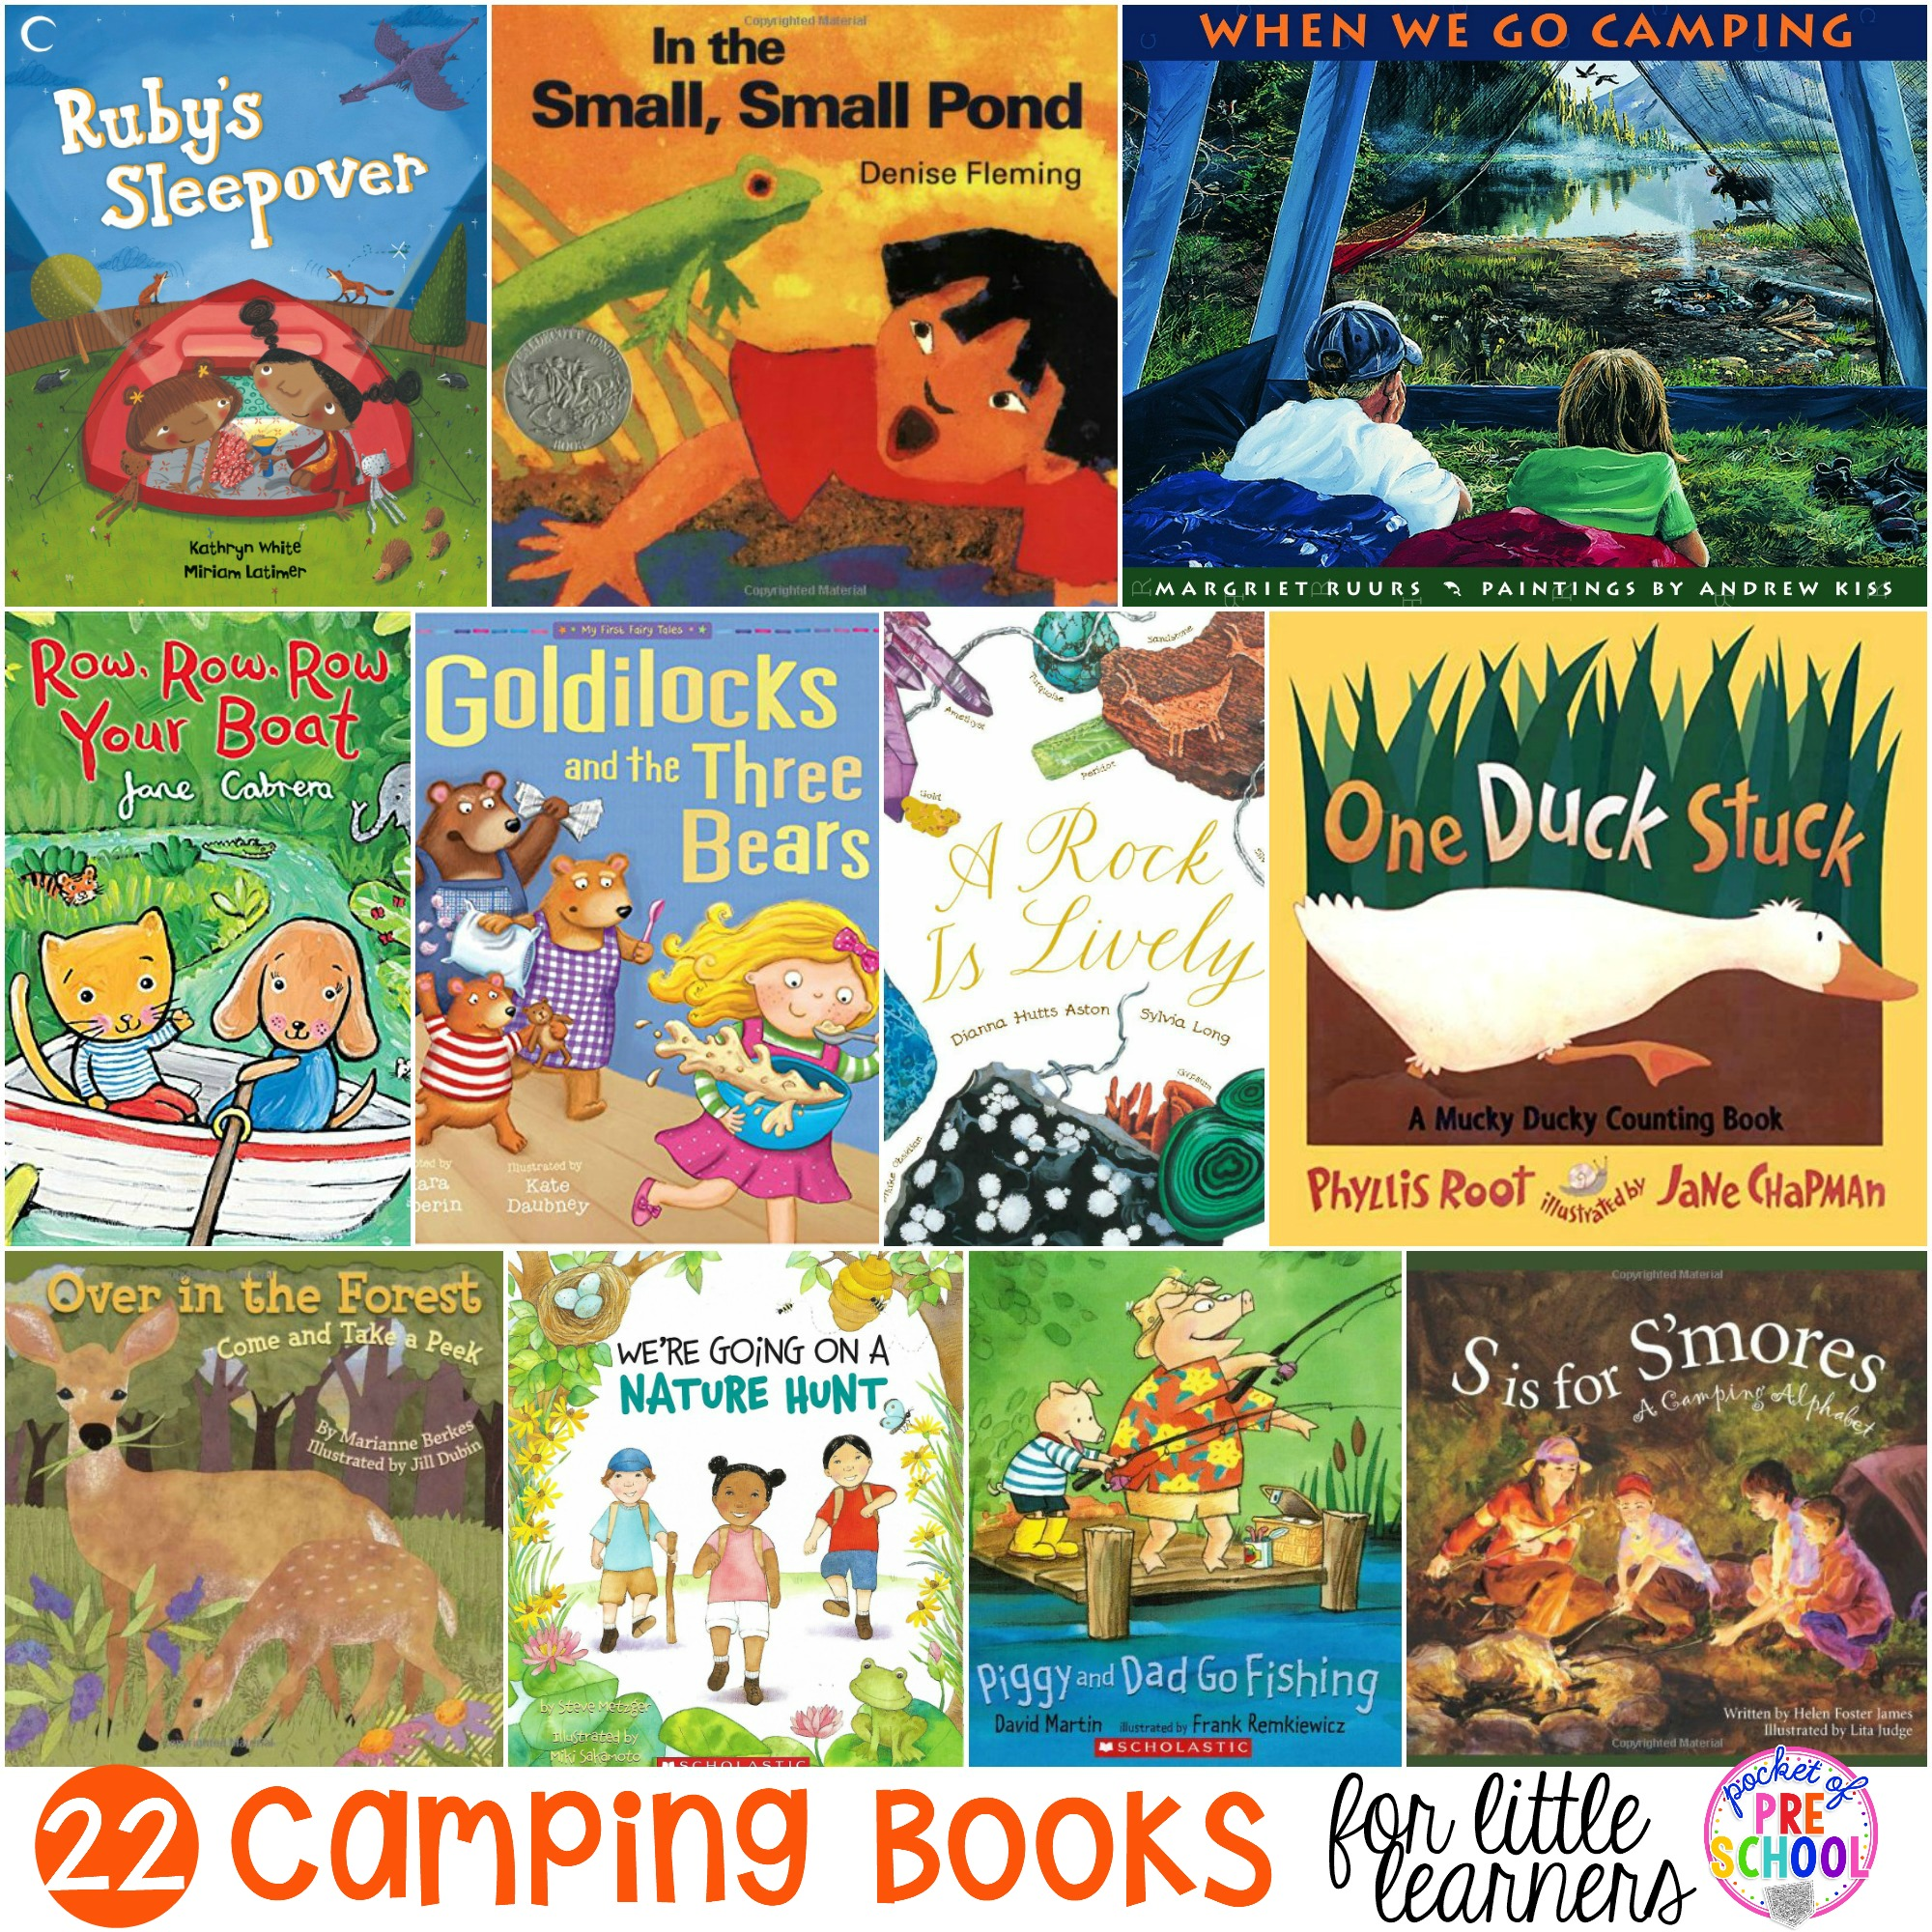 Camping Books For Little Learners